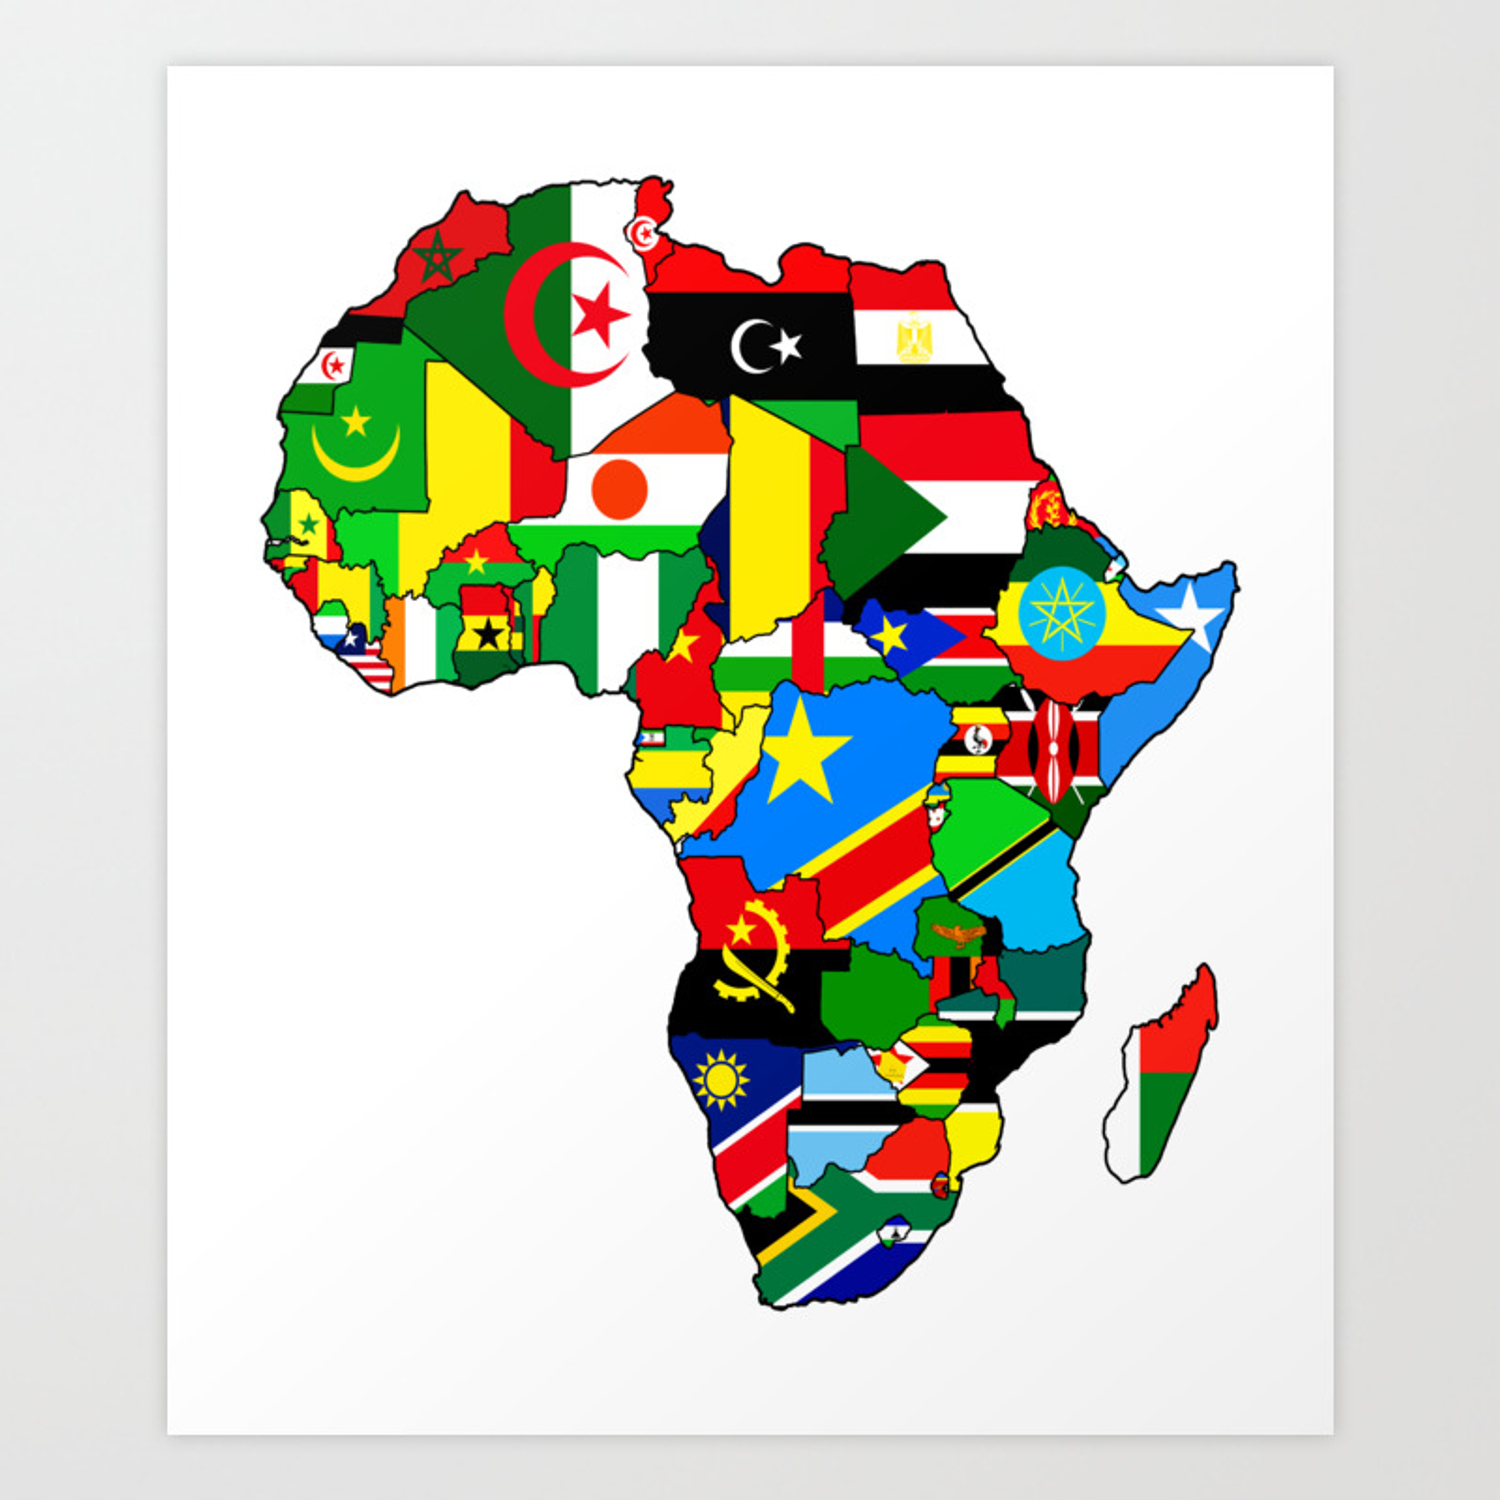 Map Of Africa Flags.Flags Of African Countres Africa Map Art Print